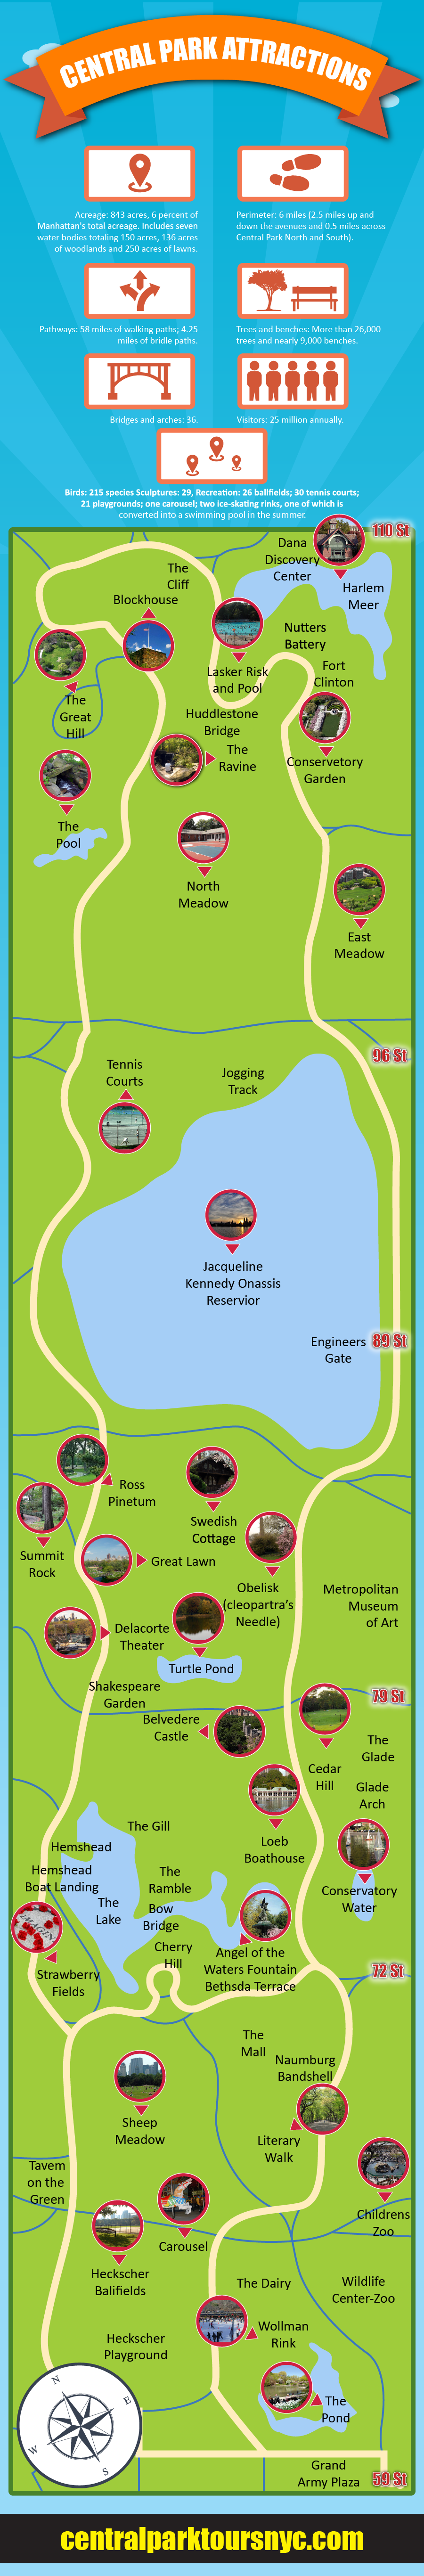 central park map and central park sightseeing and central park attractions